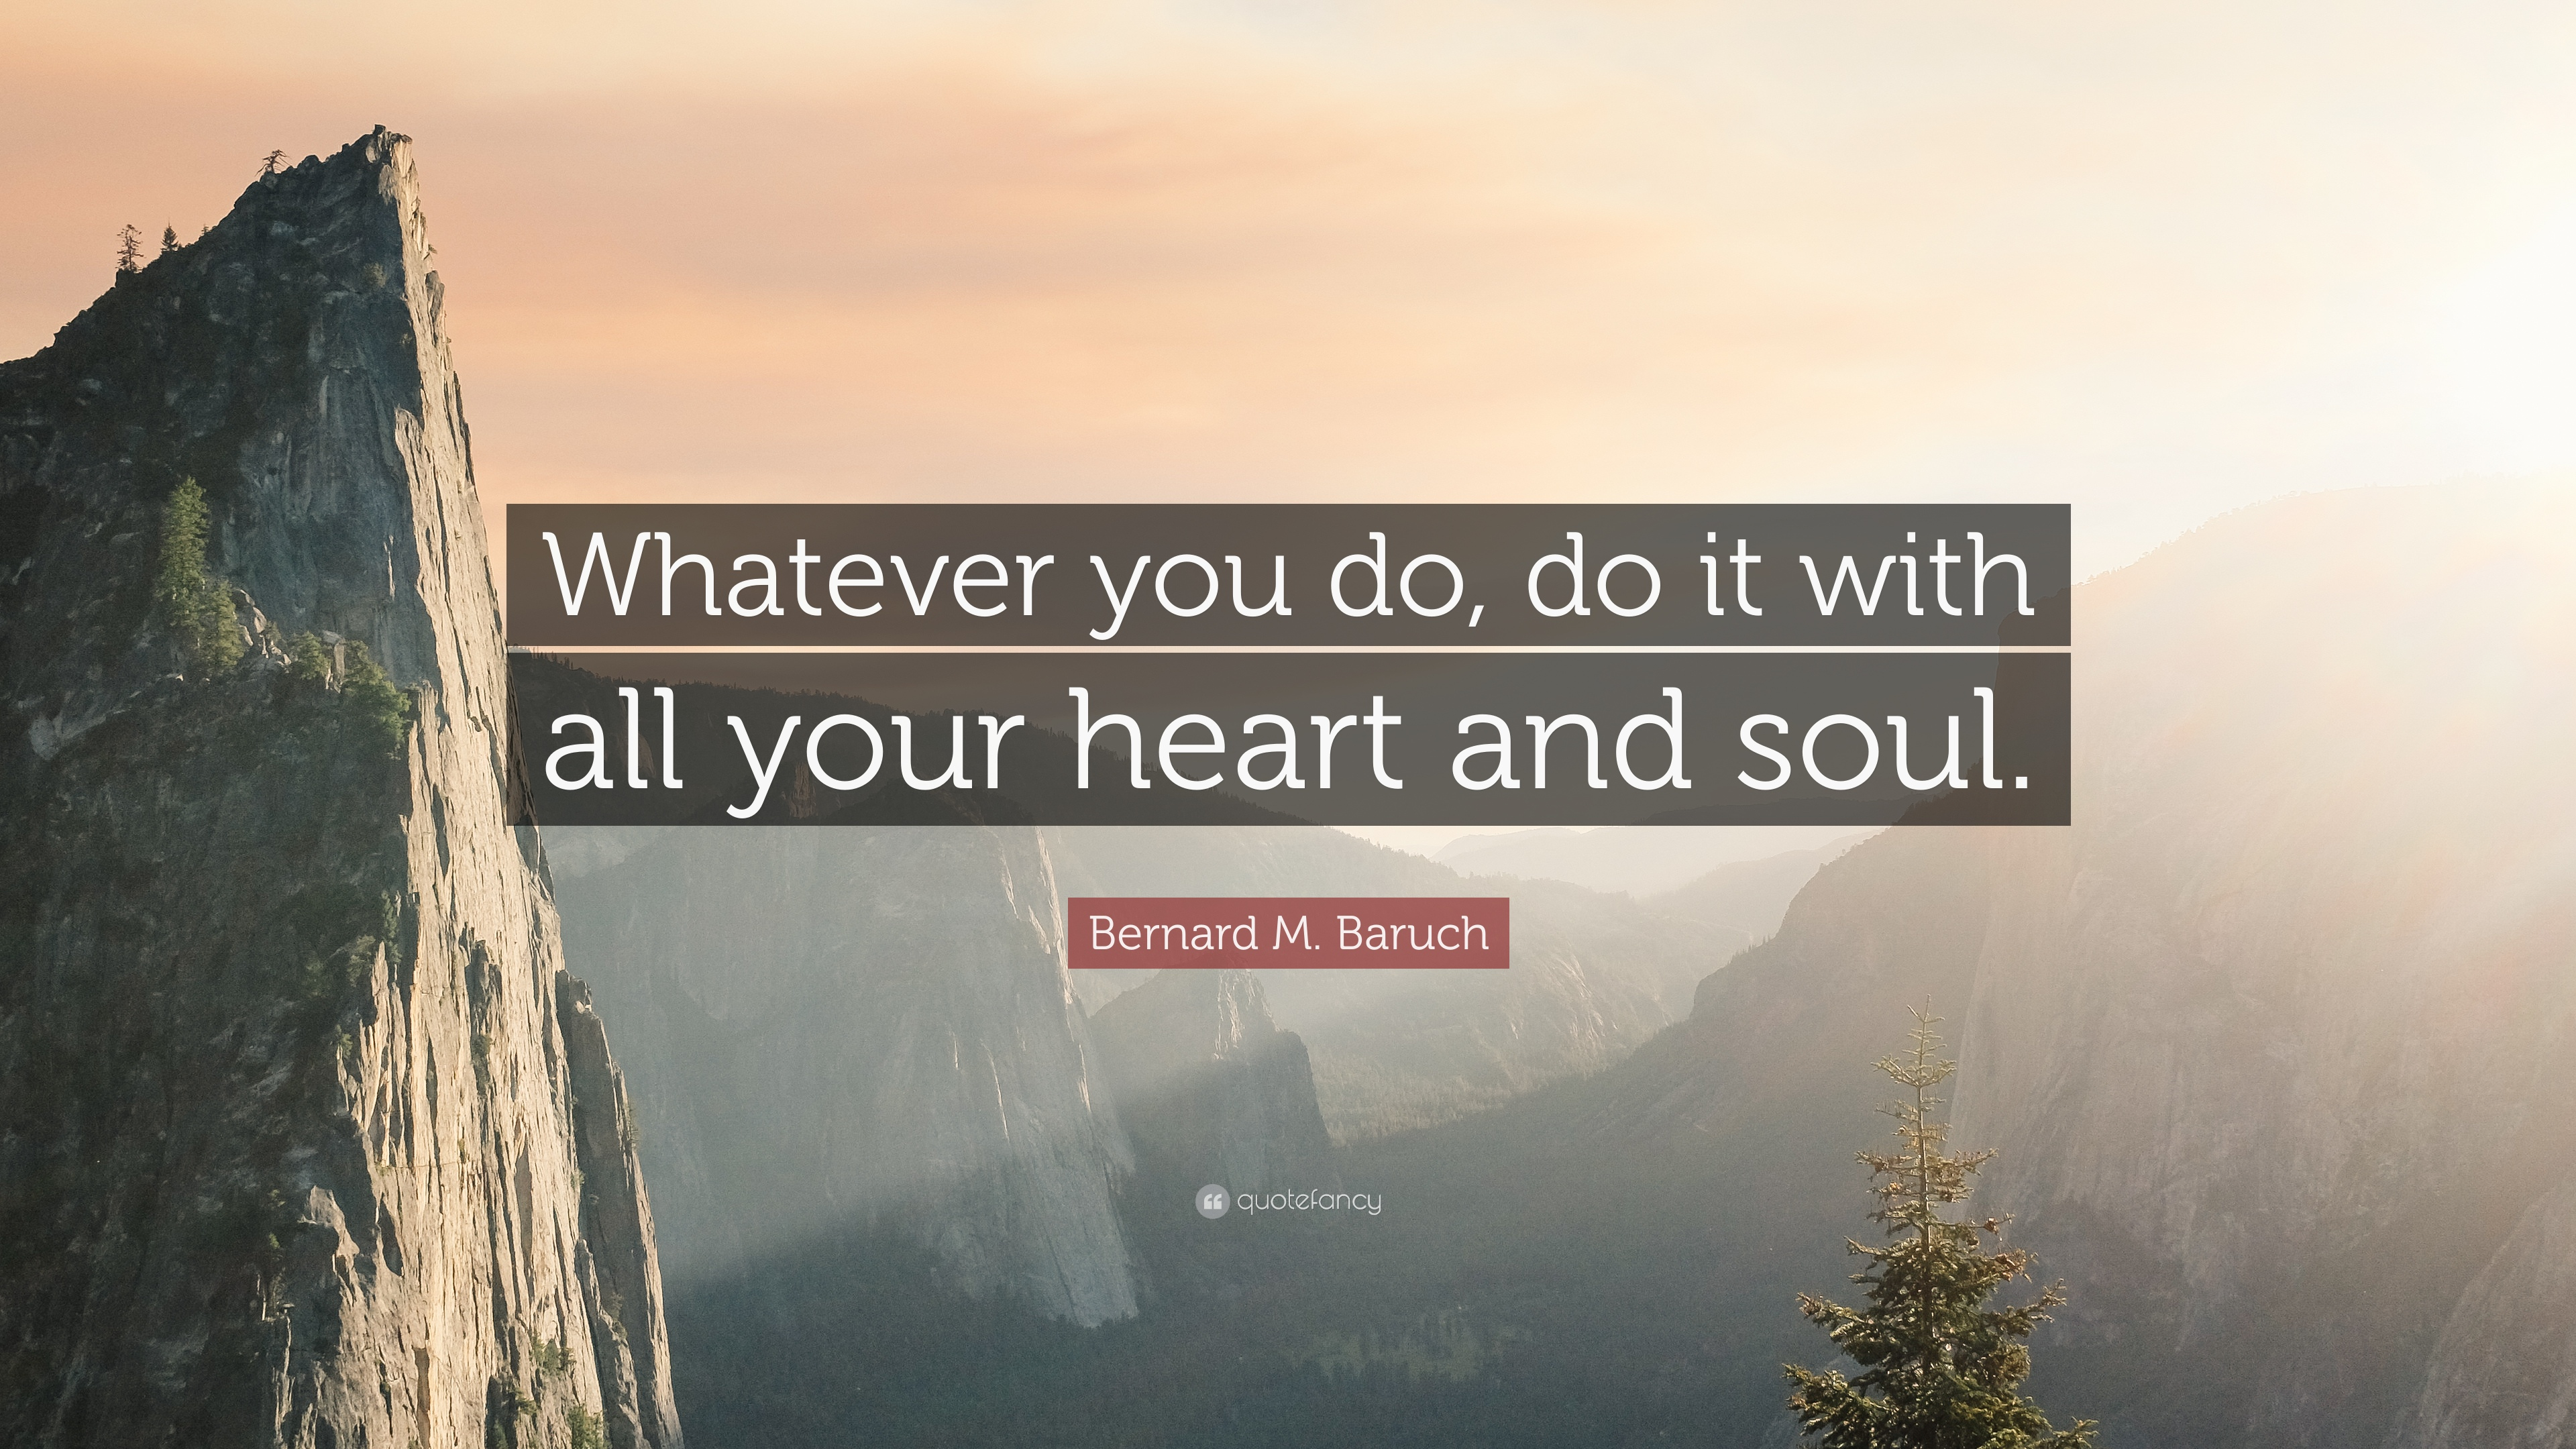 bernard m baruch quote whatever you do do it with all your heart and soul 12 wallpapers. Black Bedroom Furniture Sets. Home Design Ideas